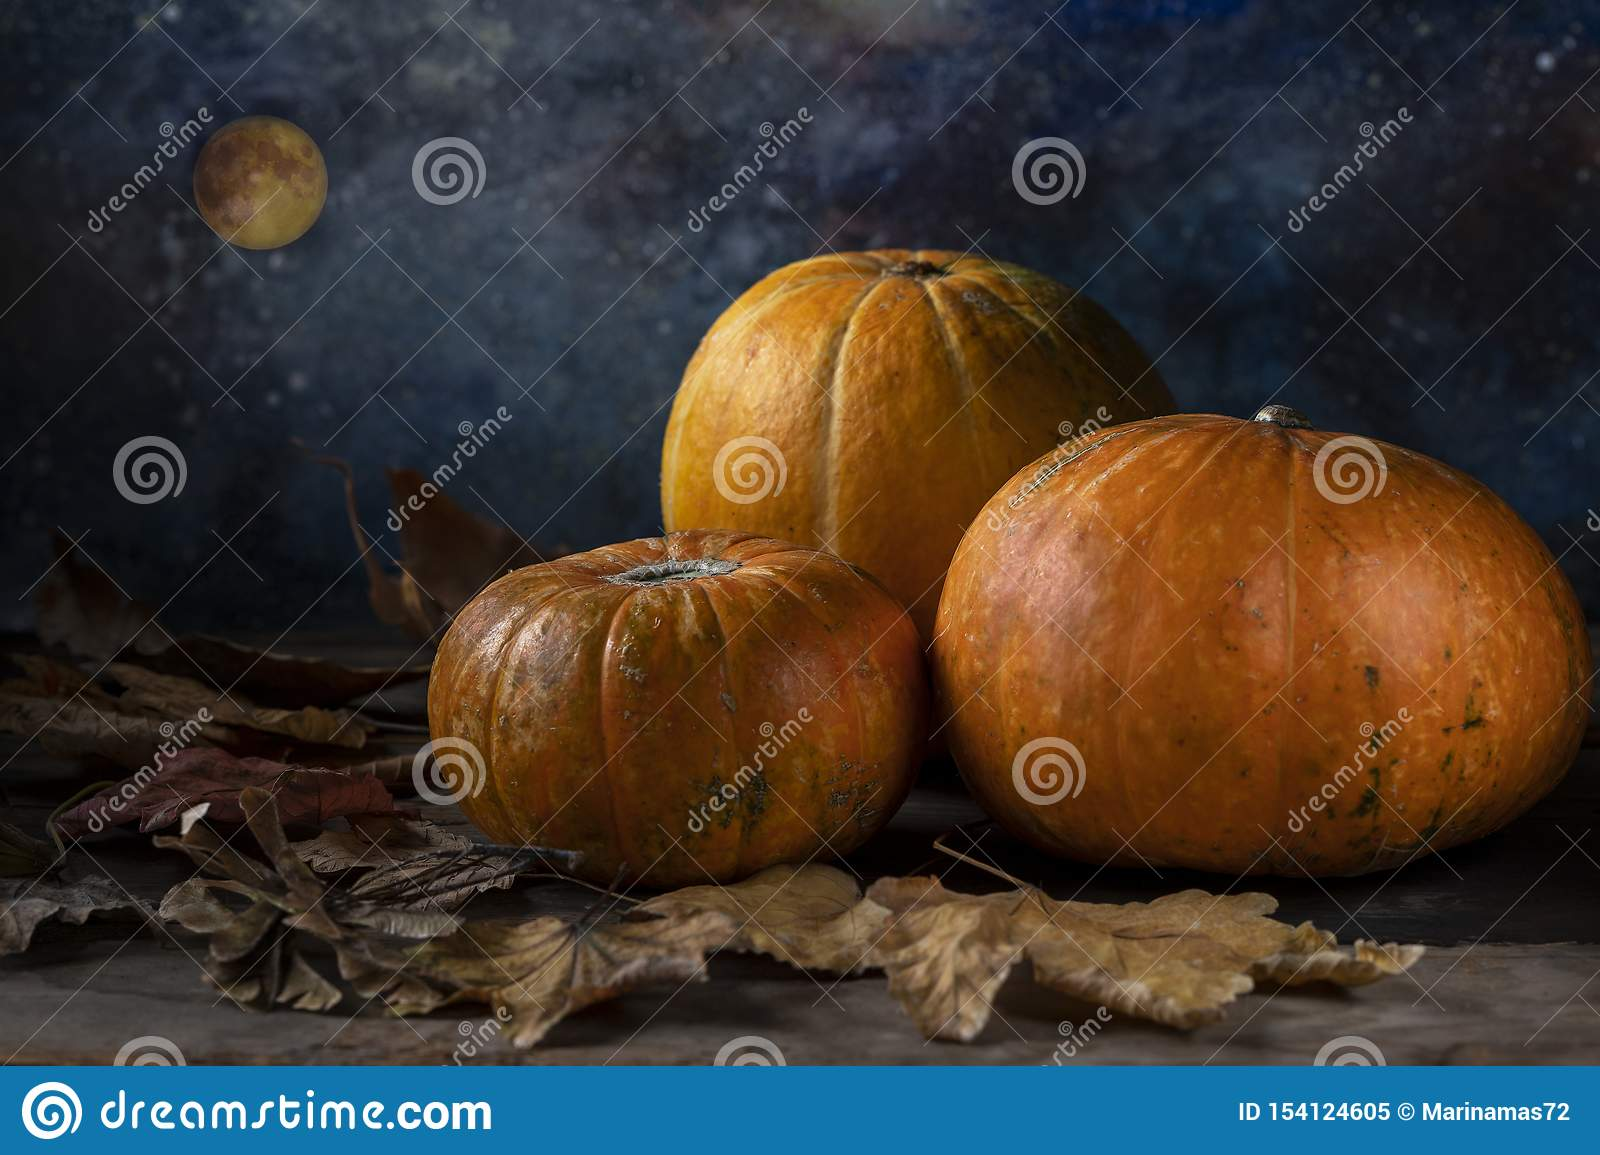 A group of three pumpkins and fallen dry leaves